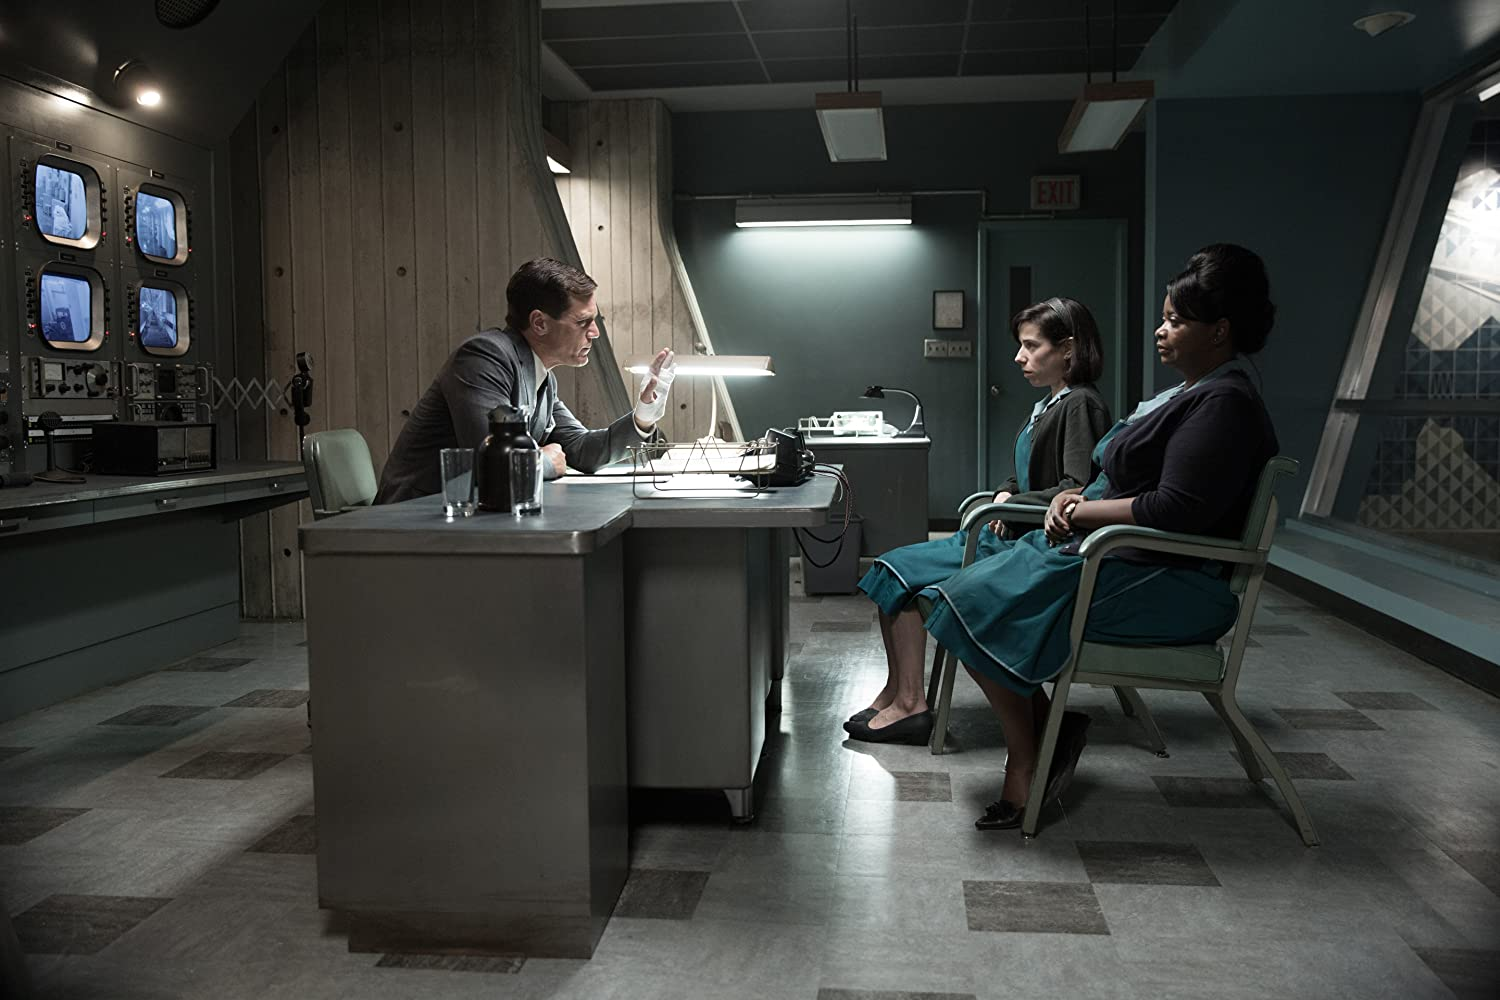 Michael Shannon, Octavia Spencer, and Sally Hawkins in The Shape of Water (2017)